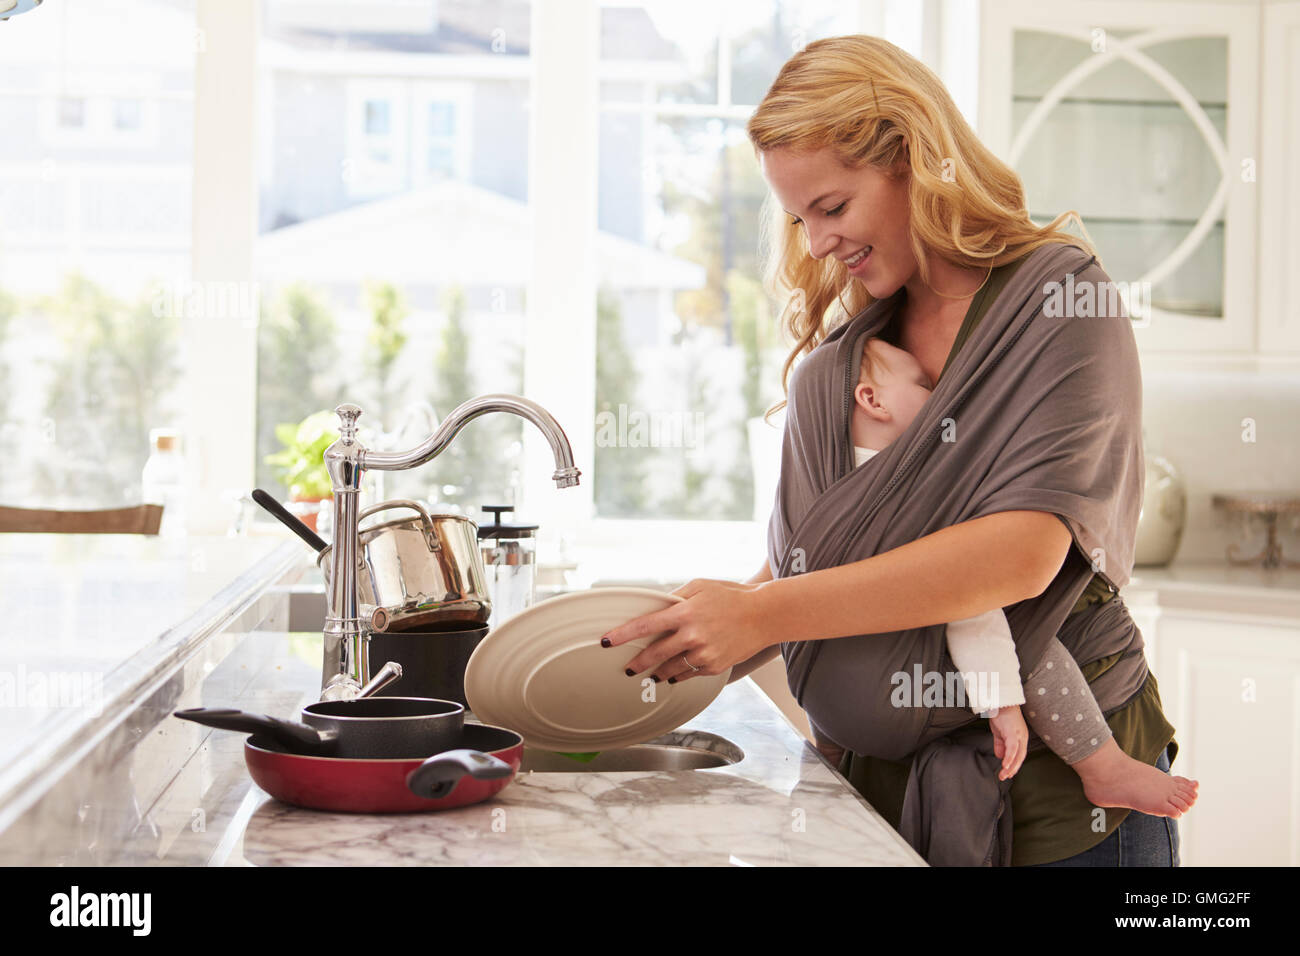 Busy Mother With Baby In Sling Multitasking At Home - Stock Image